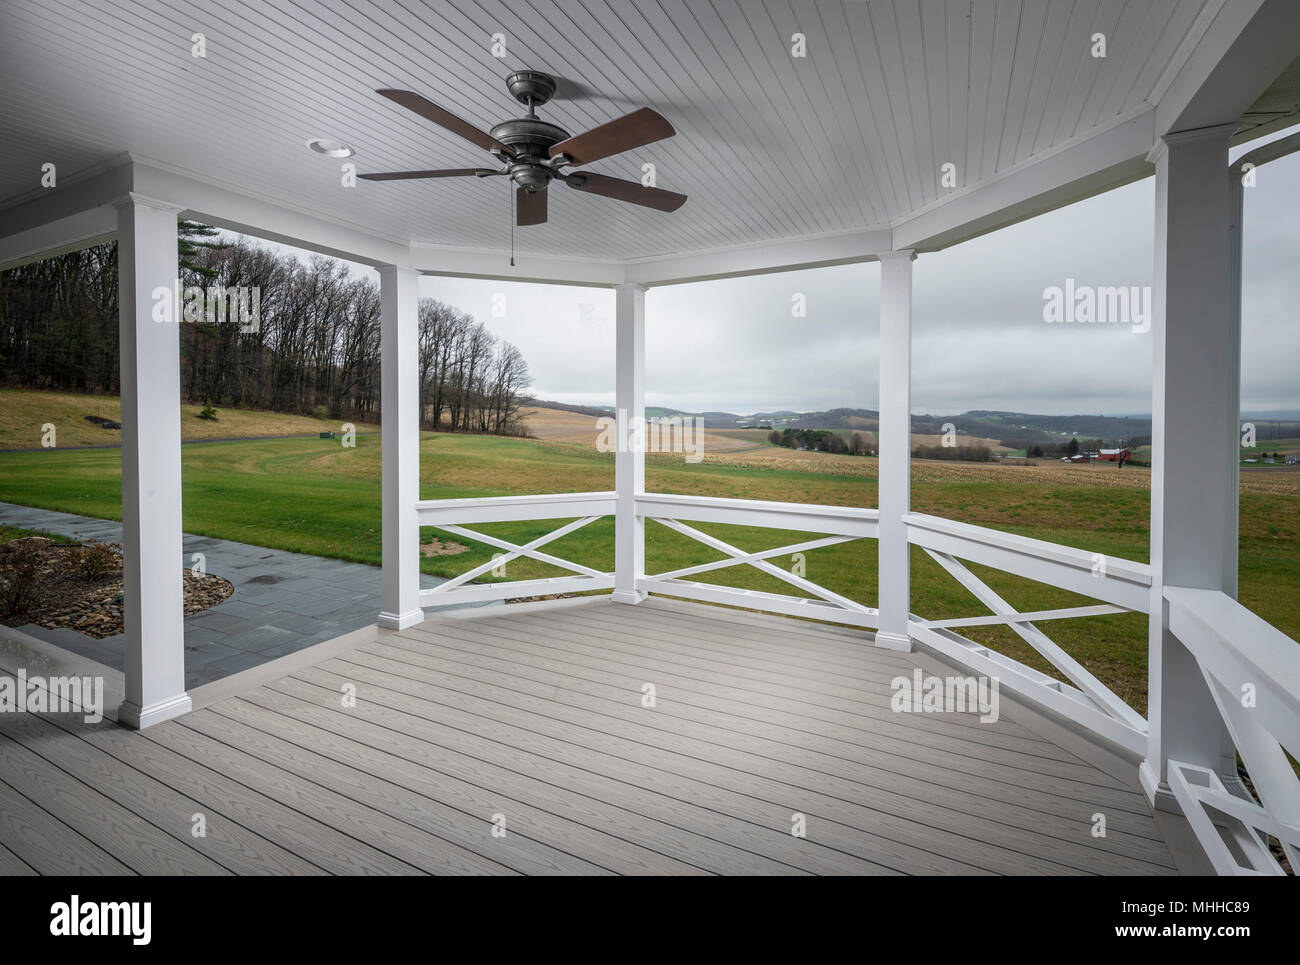 Large Empty Porch Overlooking Farmland - Stock Image